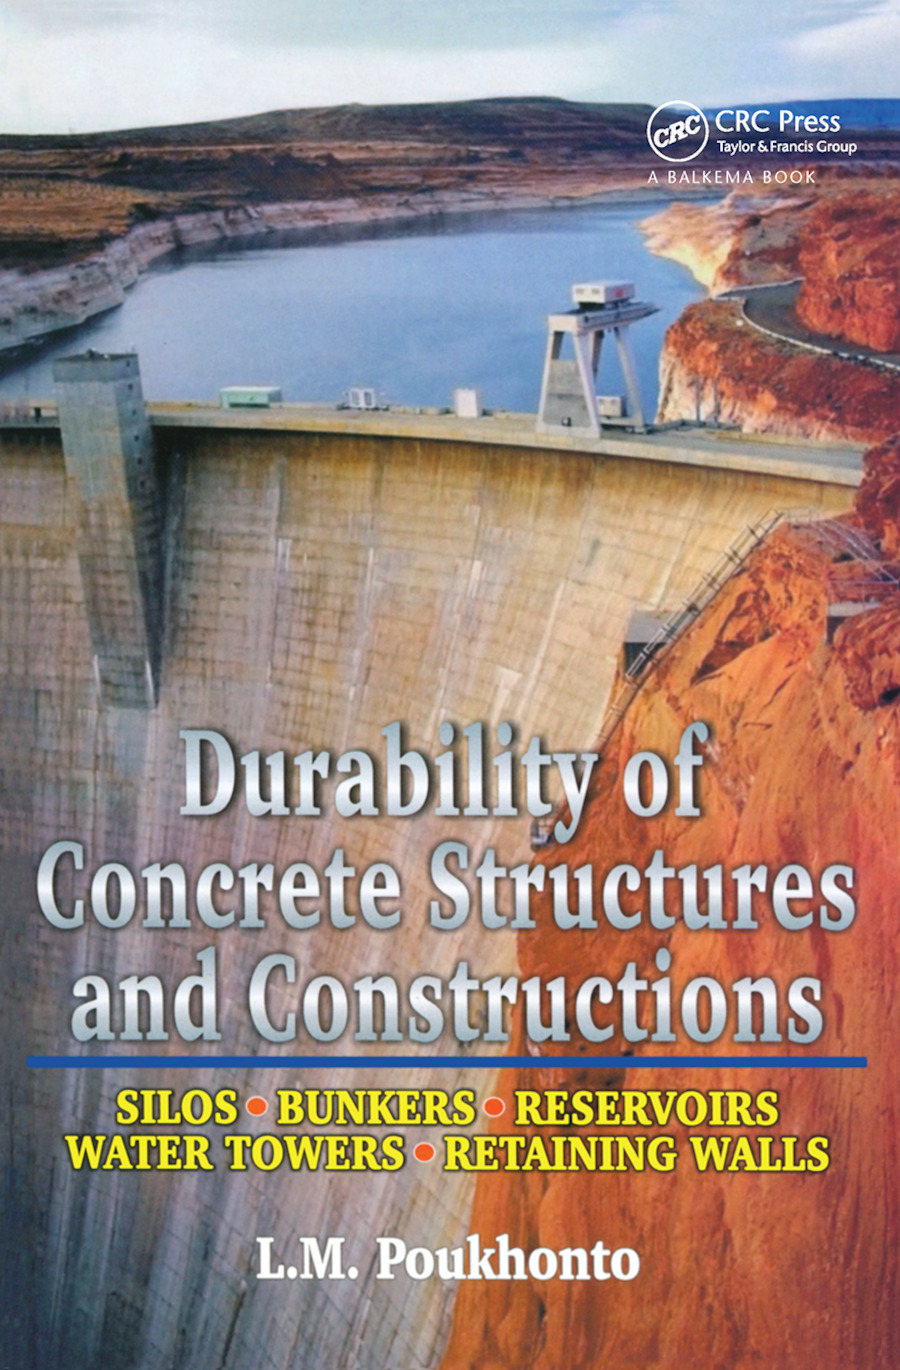 Durability of Concrete Structures and Constructions: Silos, Bunkers, Reservoirs, Water Towers, Retaining Walls, 1st Edition (Hardback) book cover